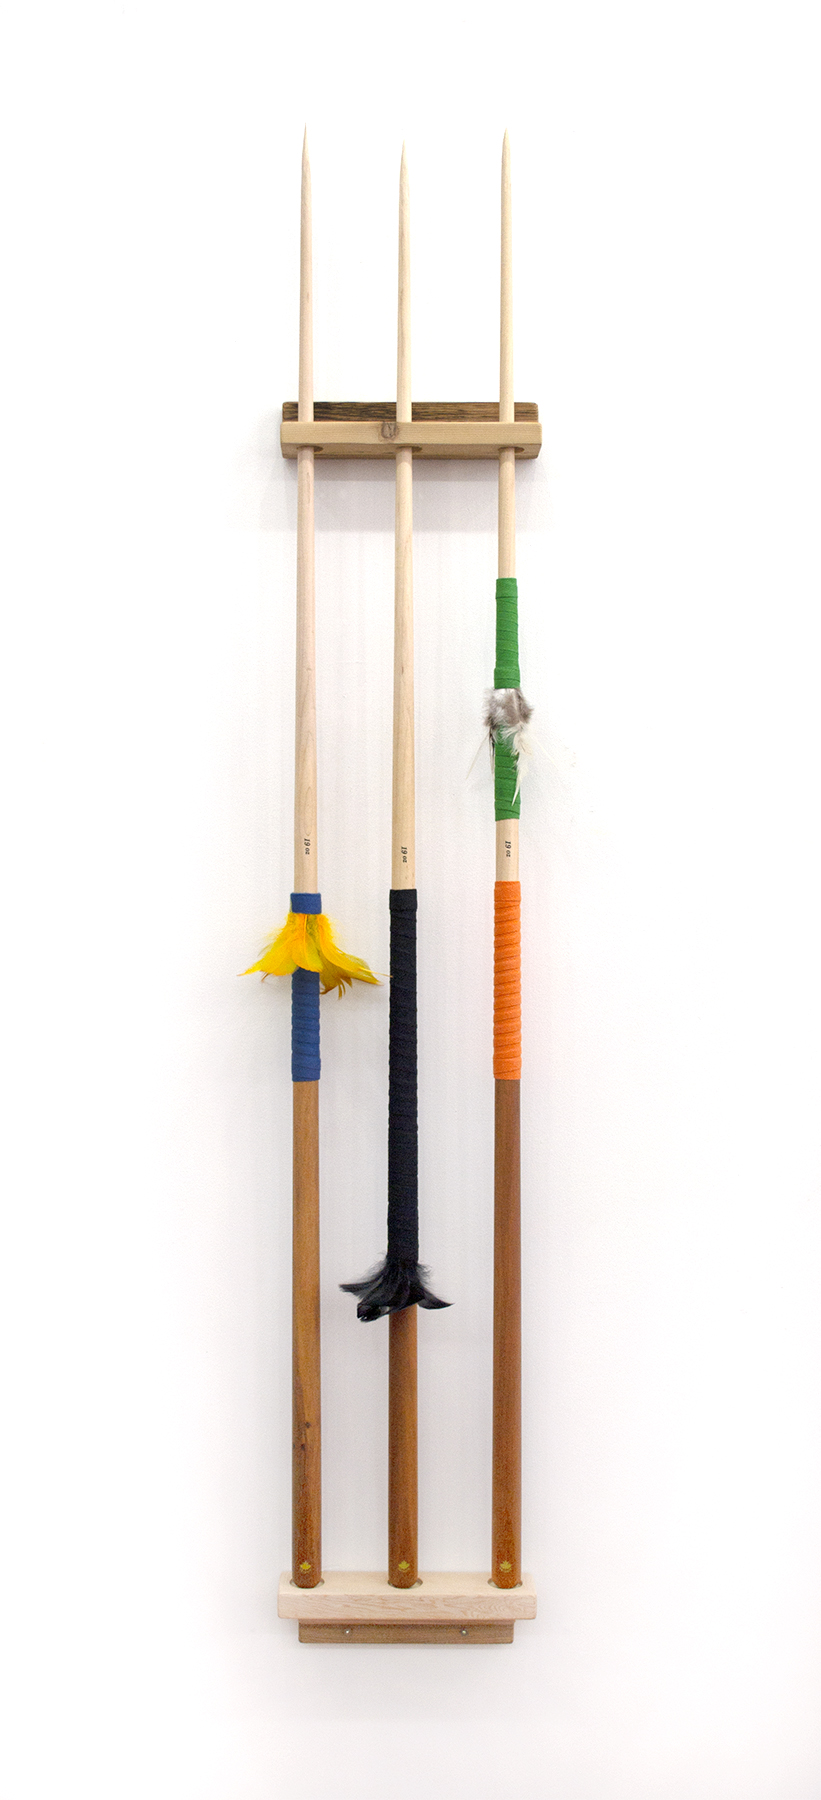 """Spears (3), 2018, Carlos Colín, Pool cues, feathers, wood, 57"""" x 10"""" x 2"""", SOLD"""